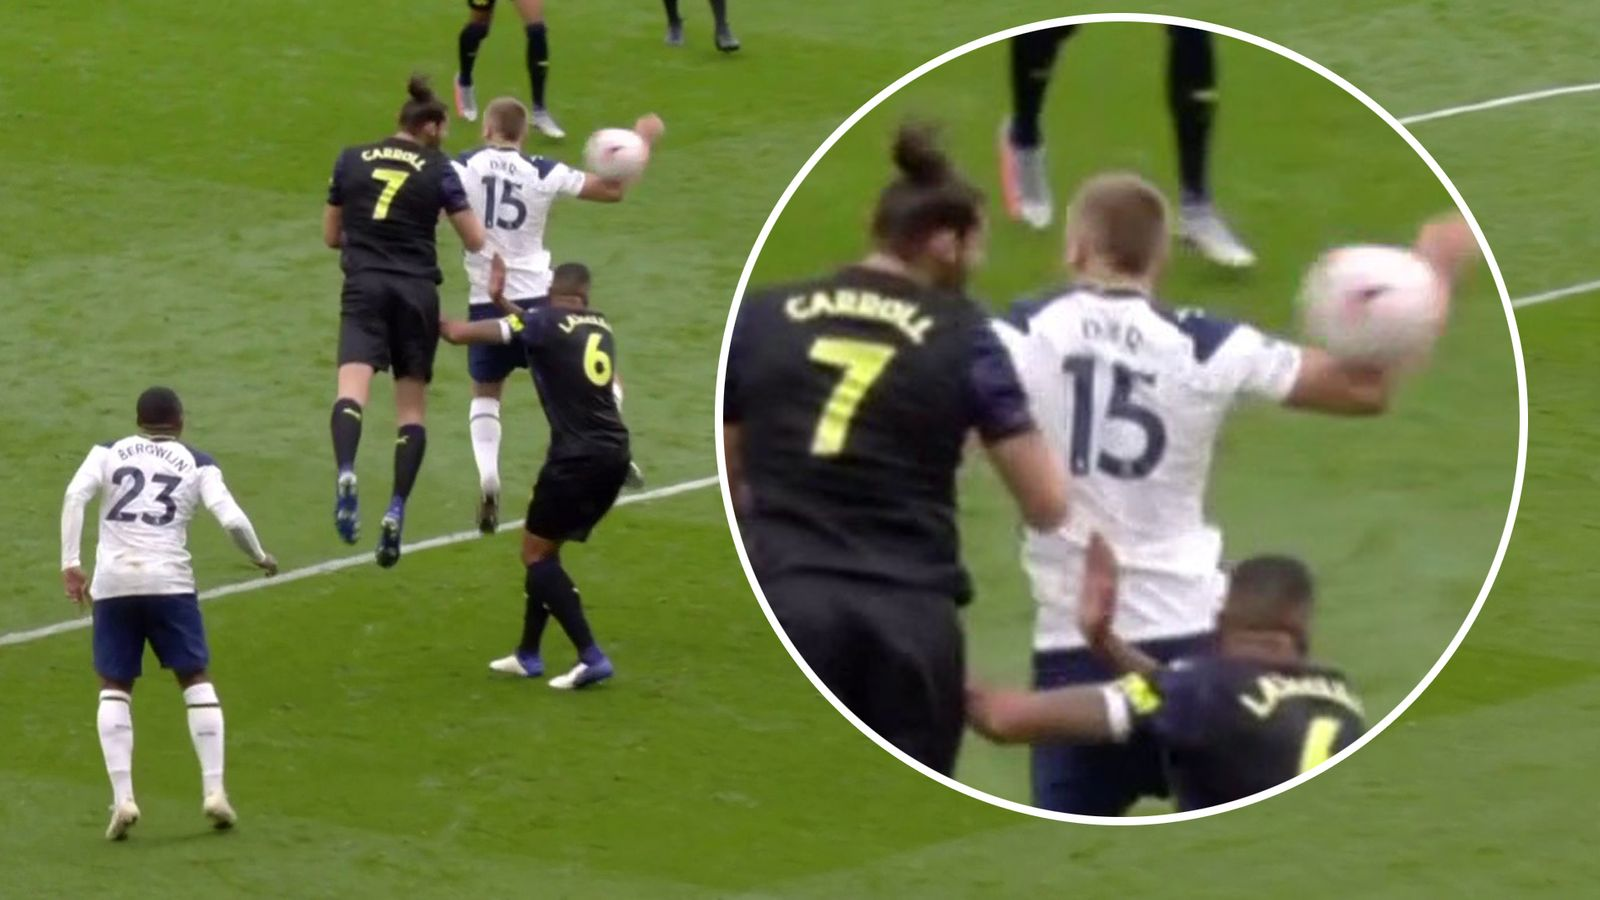 Handball rule to be discussed